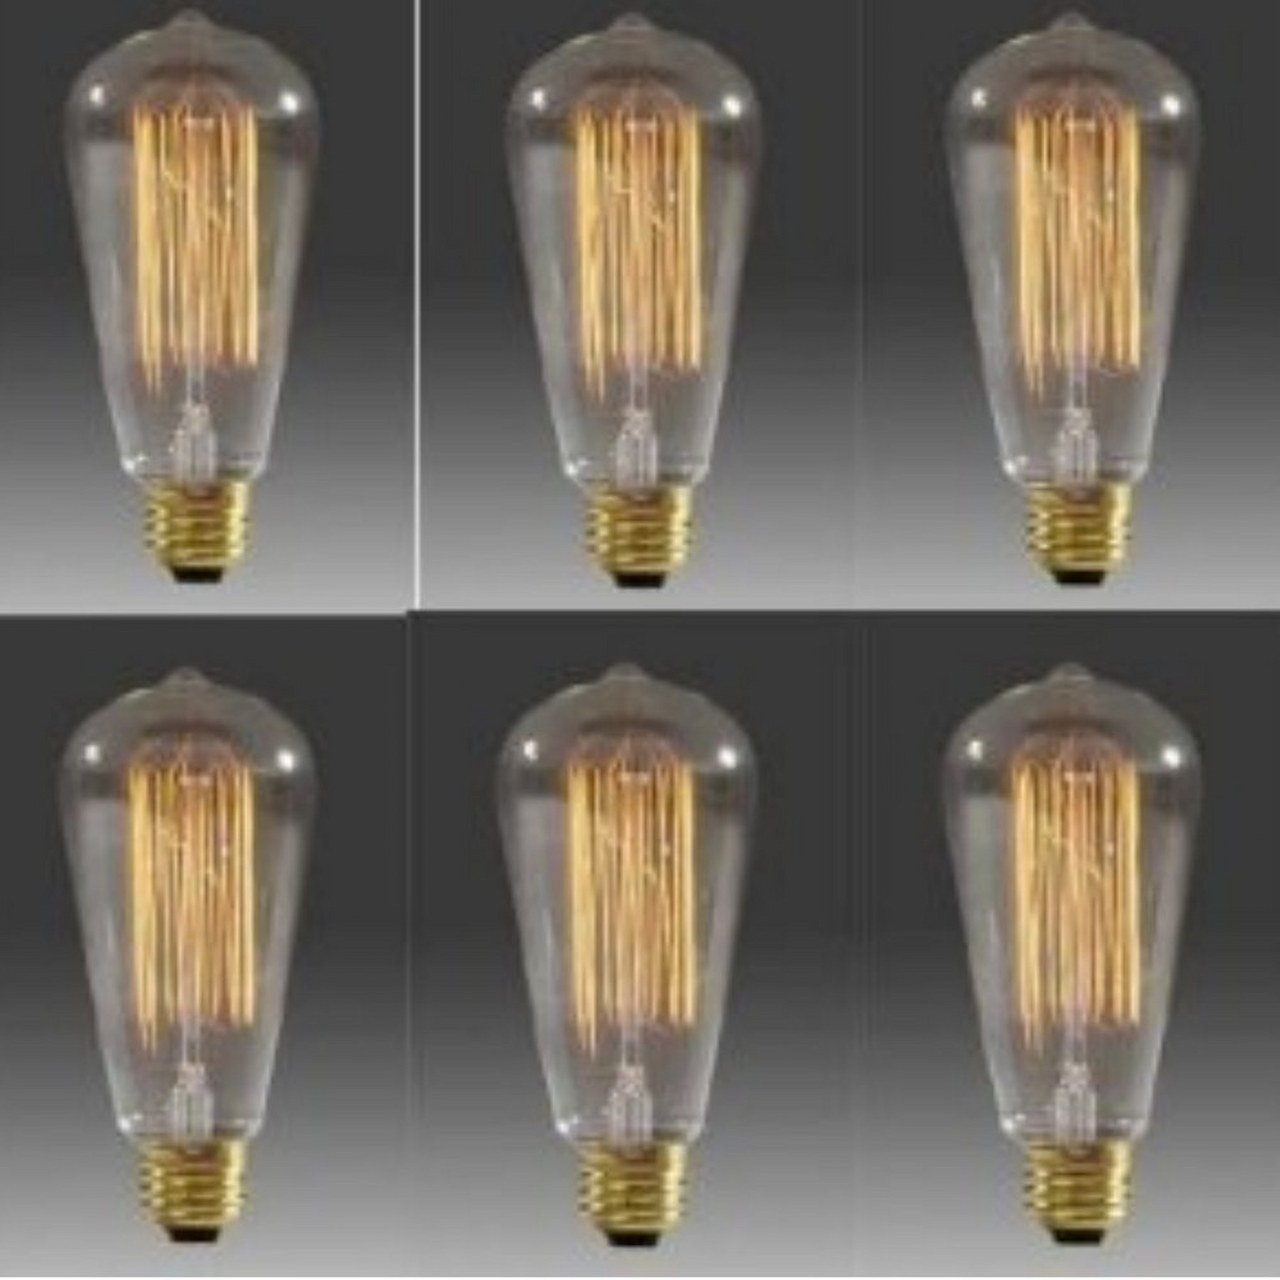 Better Efficiency 25 Watt Vintage Edison Style Squirrel Cage Light Bulb (Set of 6)